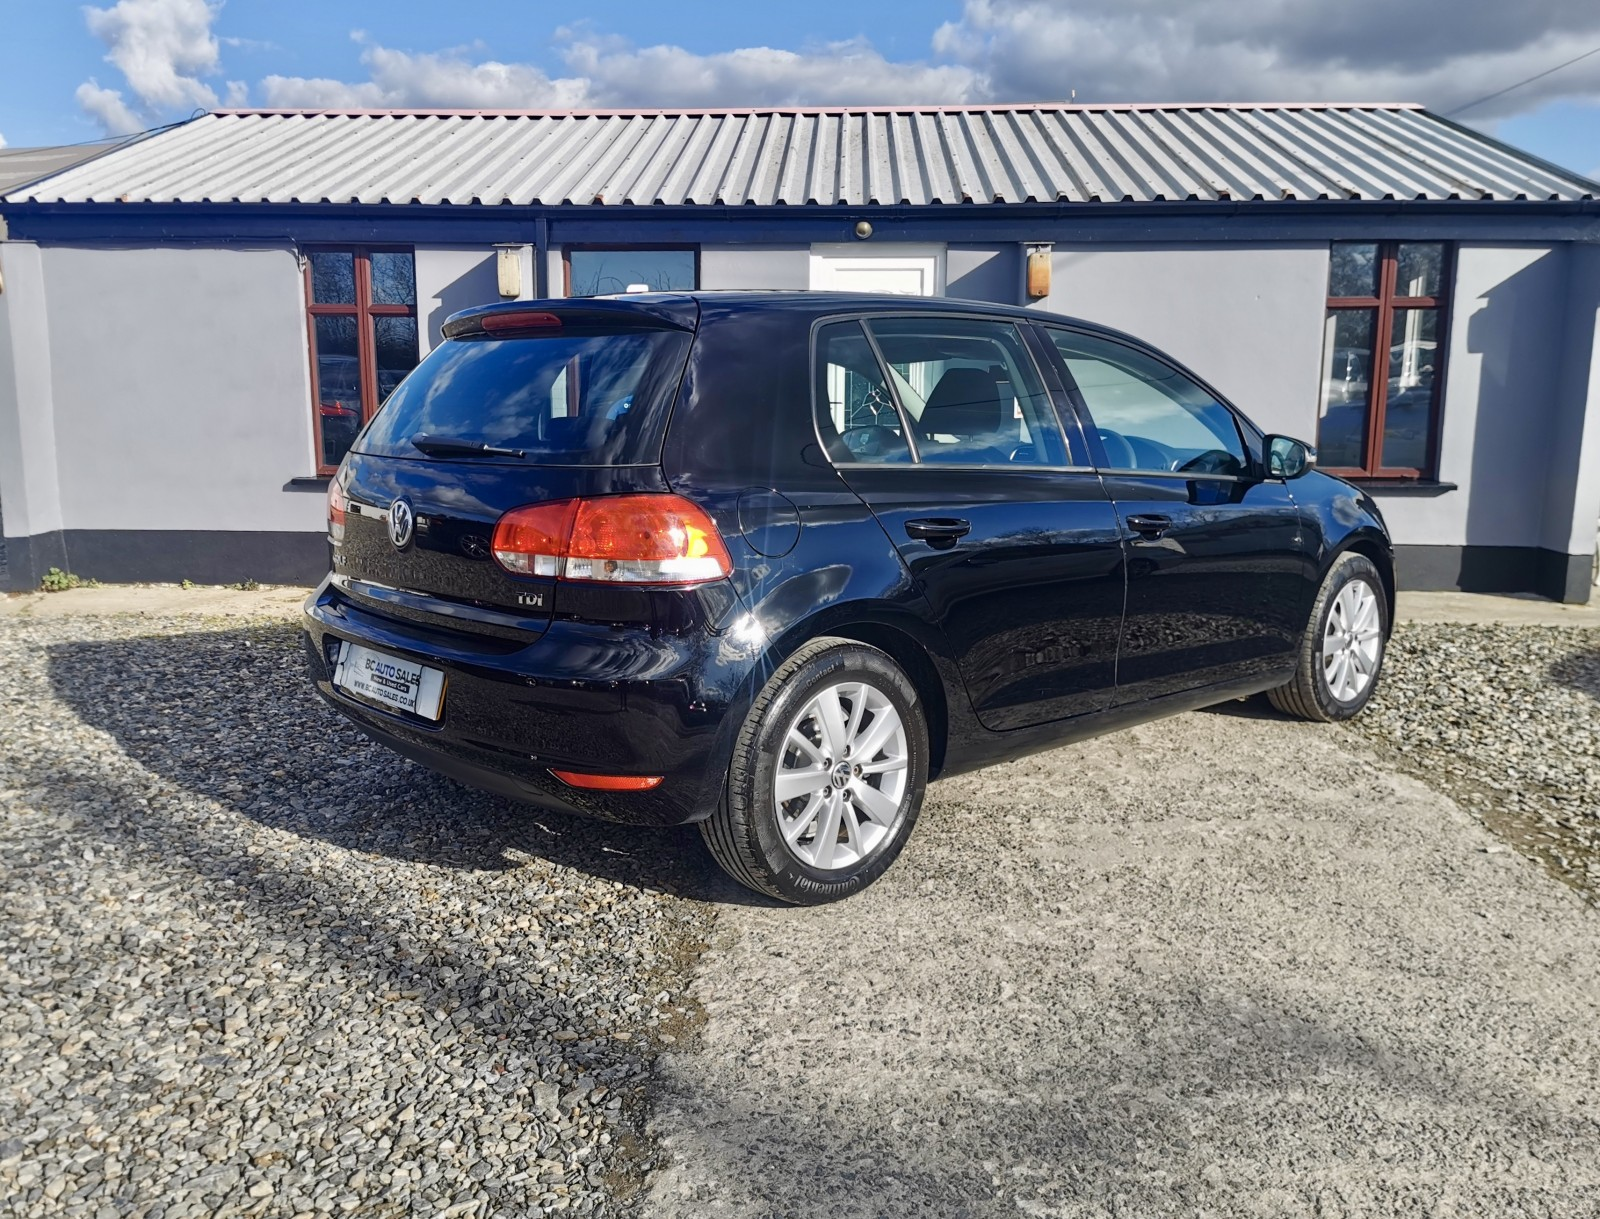 2010 Volkswagen Golf BLUEMOTION TDI Diesel Manual – BC Autosales 17A Airfield Road, Eglinton, Londonderry BT47 3PZ, UK full